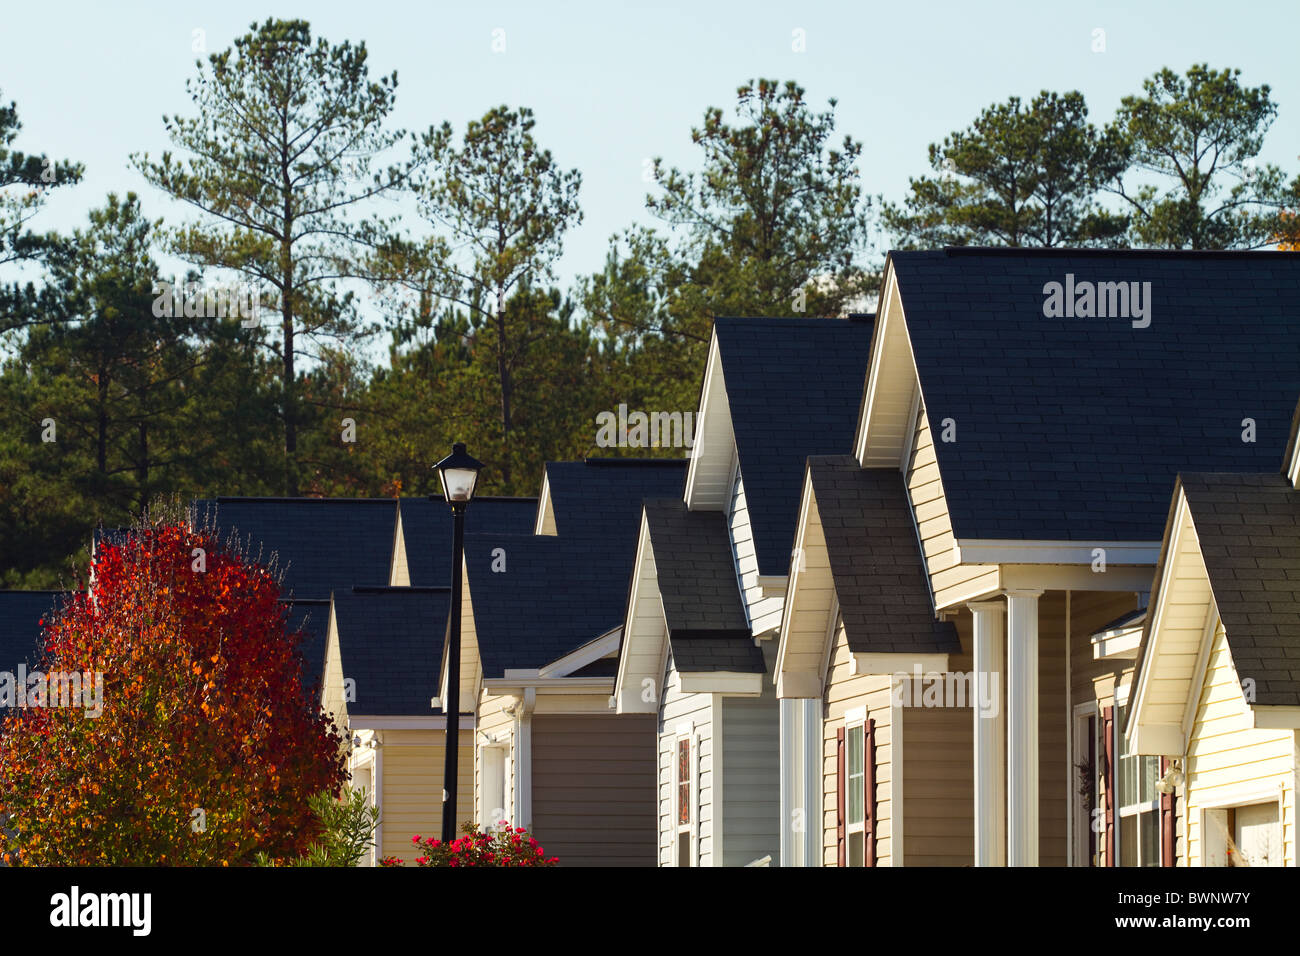 Pointed rooflines of typical middle class, southern American residential subdivision of homes that are built close Stock Photo